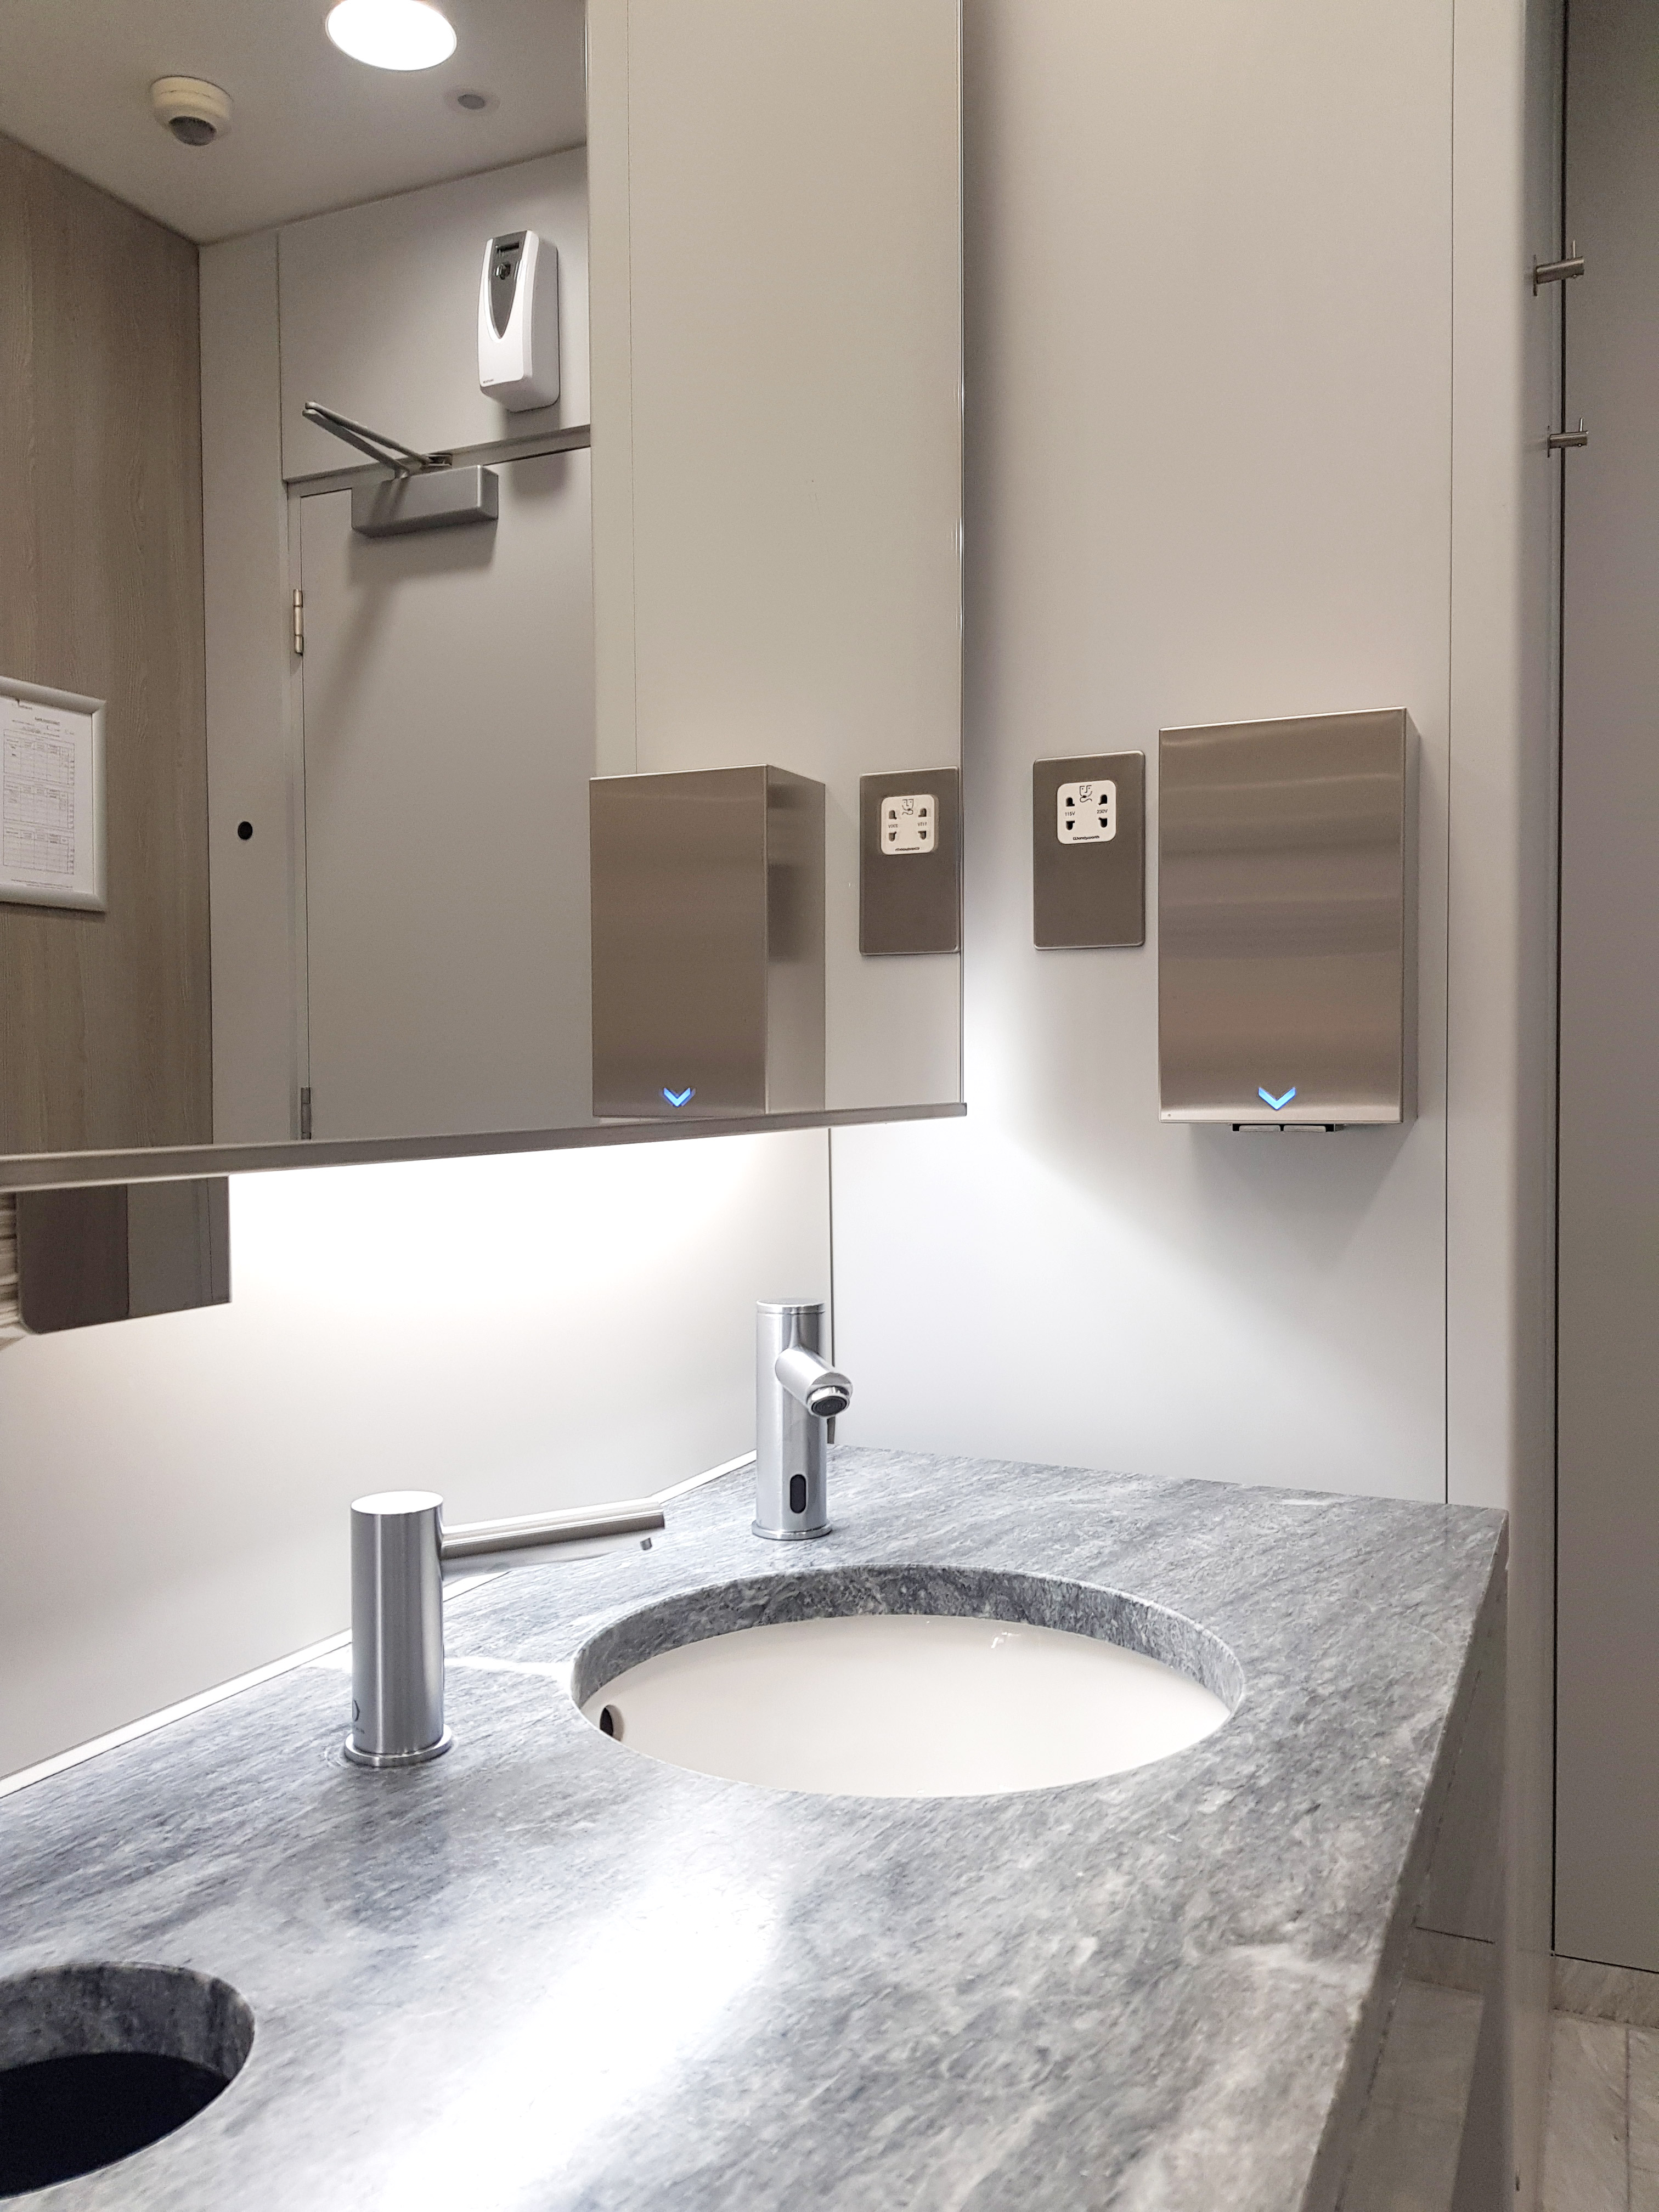 Dolphin Hand Dryer and Commercial Washroom Accessories at Botolph Building